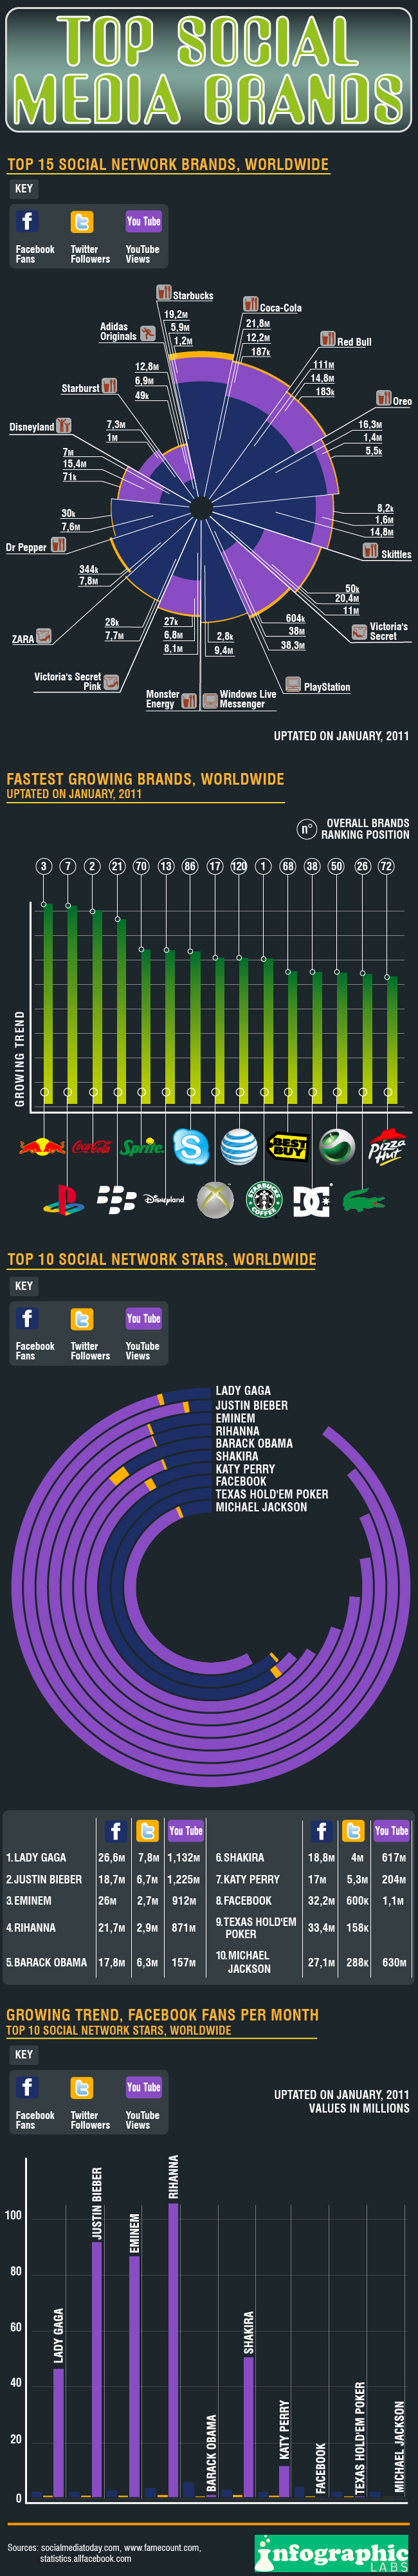 What are the Top Social Media Brands?